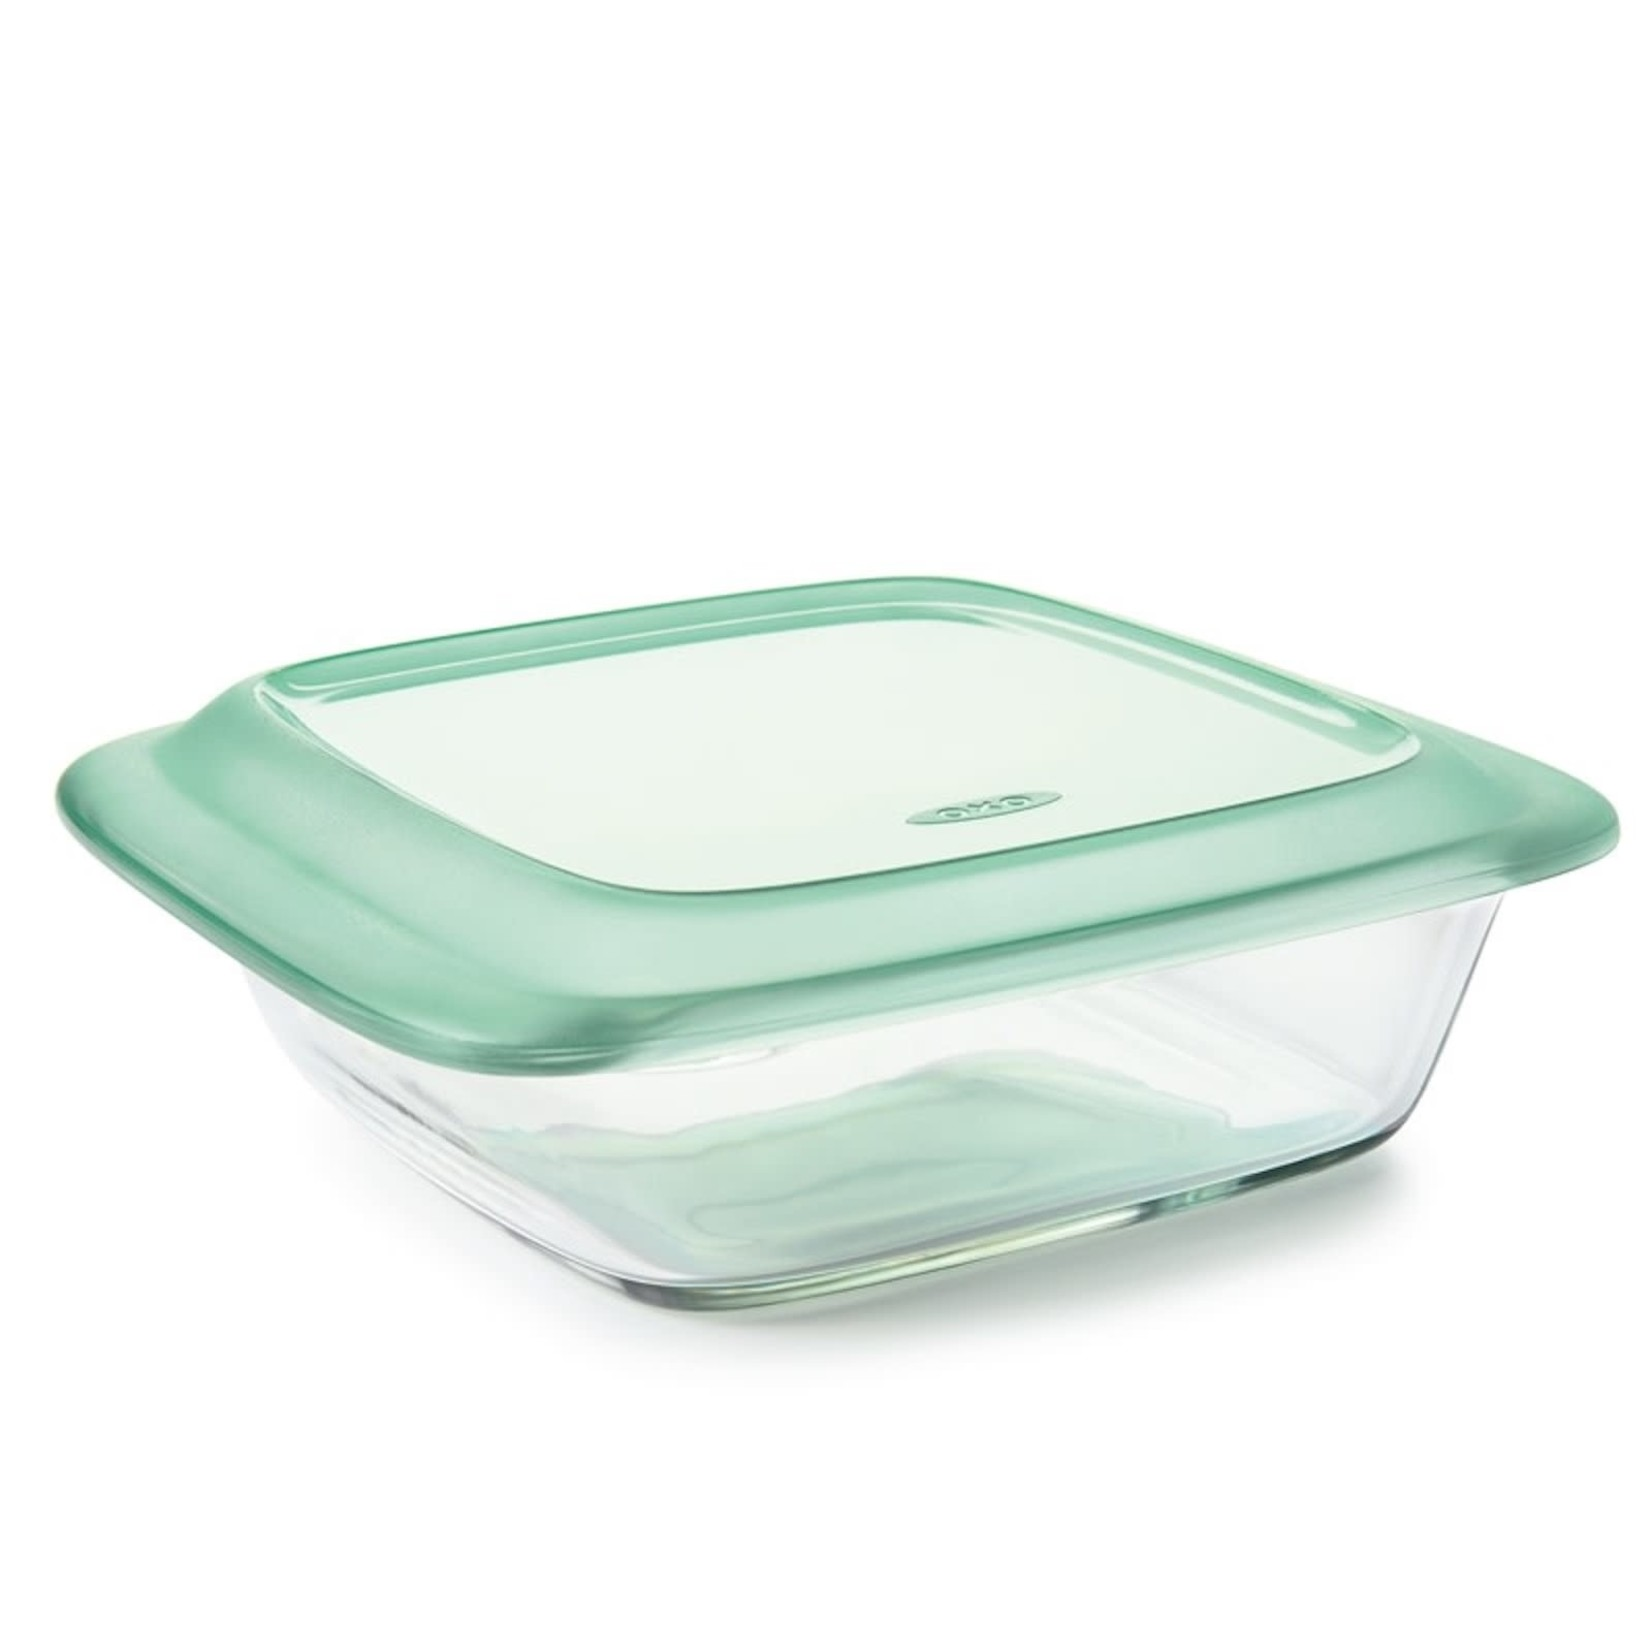 OXO Glass Baking Dish with Lid (Multiple Sizes)